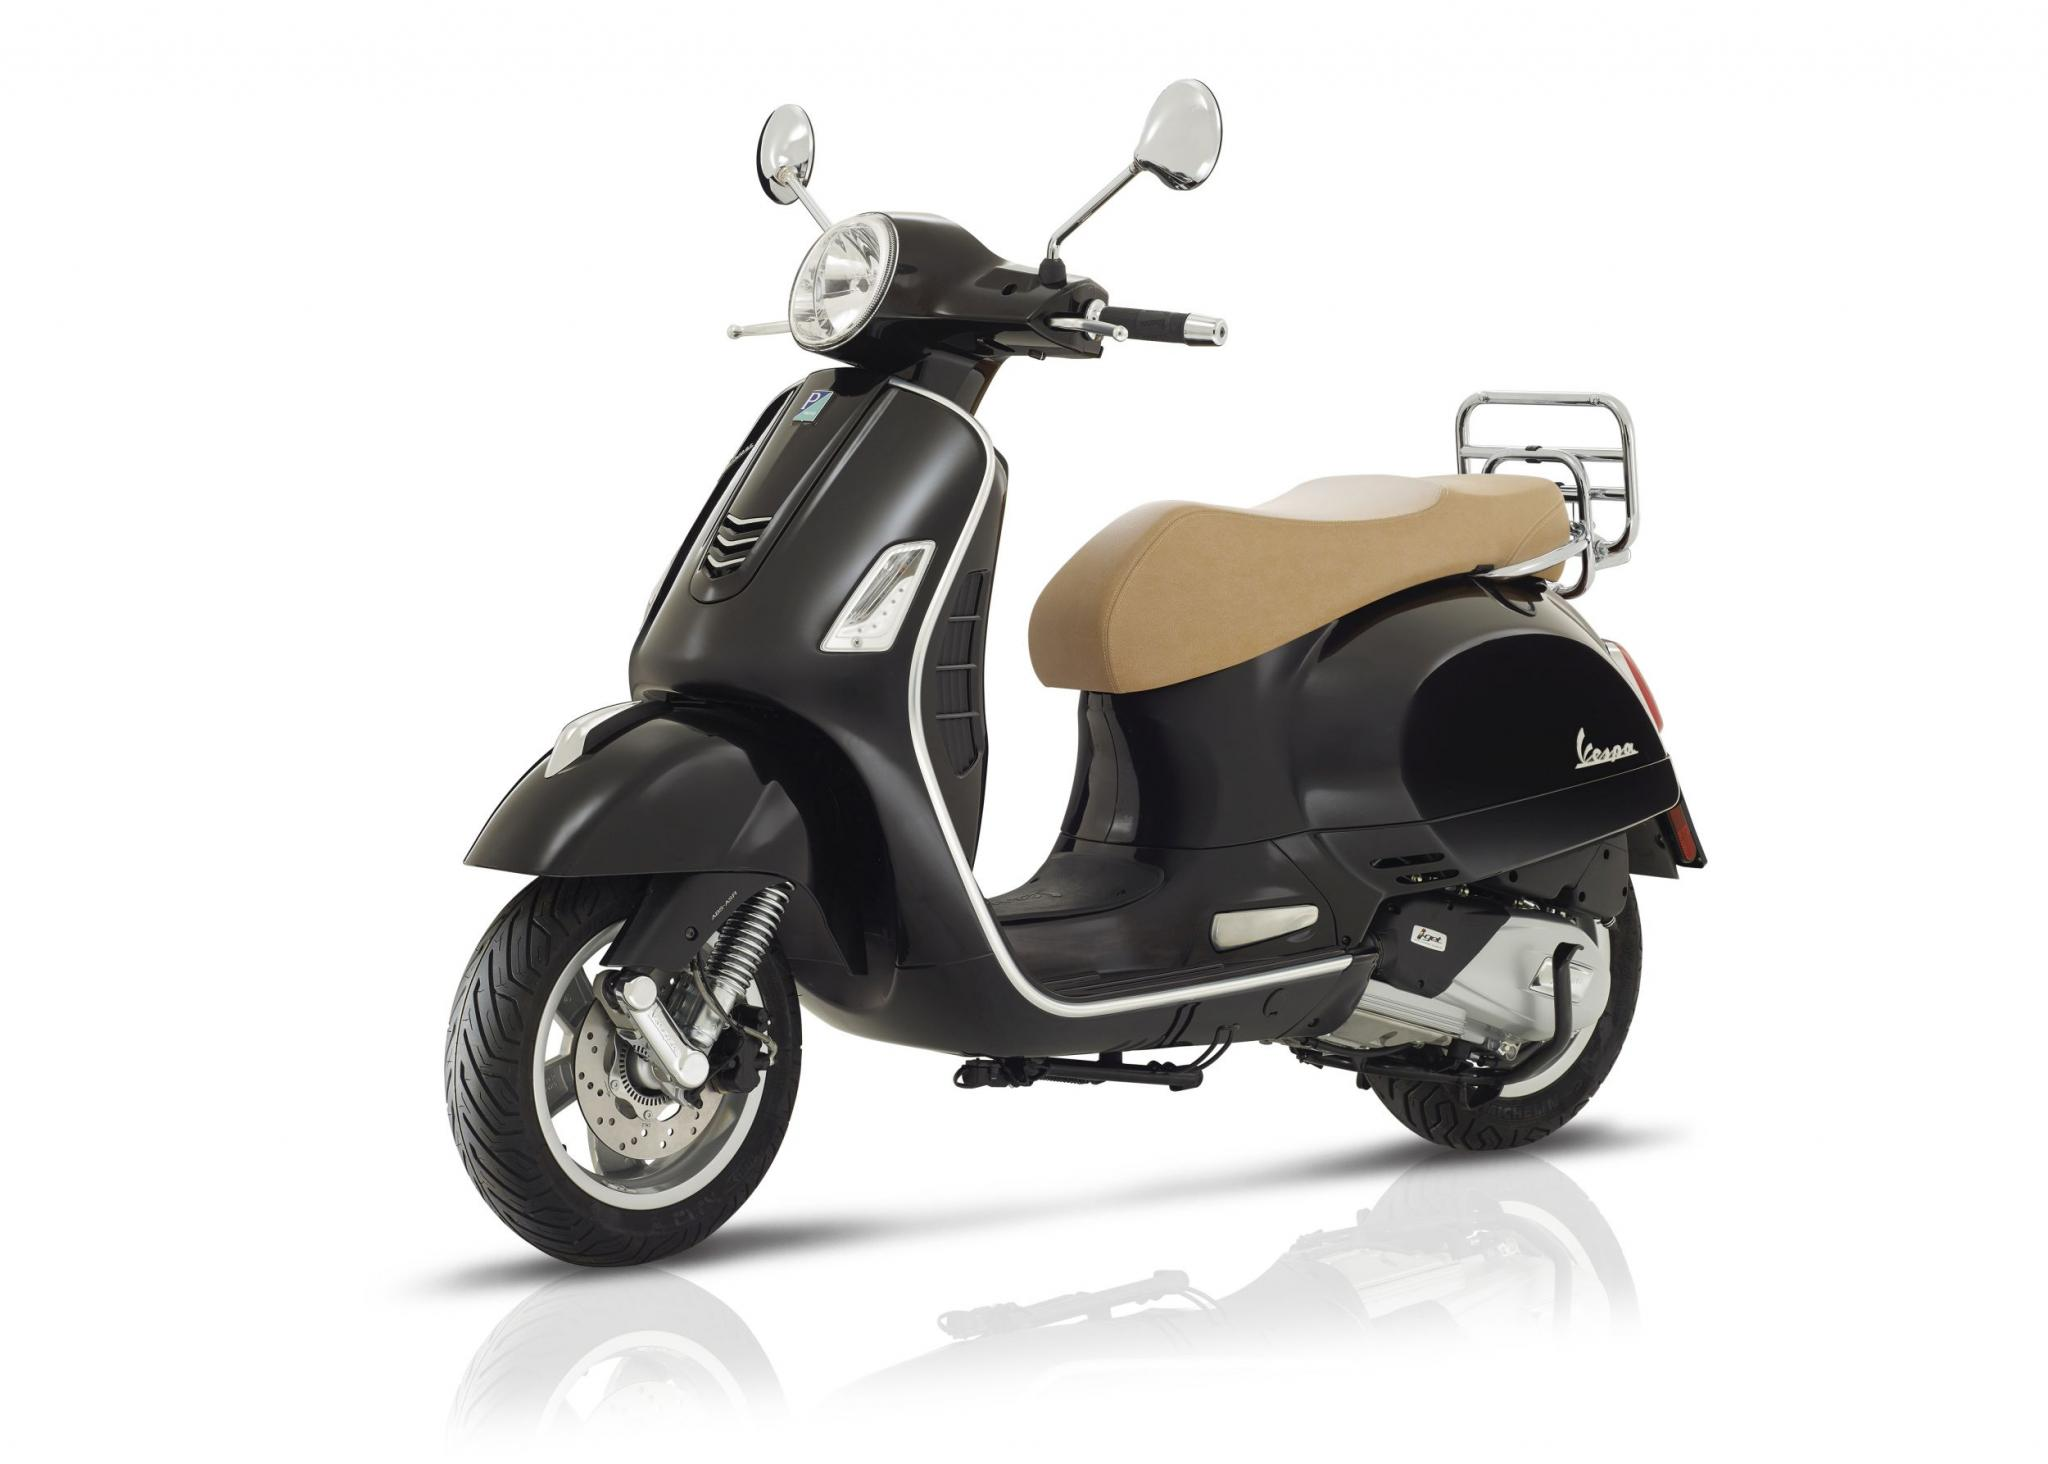 vespa gts 125 bilder und technische daten. Black Bedroom Furniture Sets. Home Design Ideas